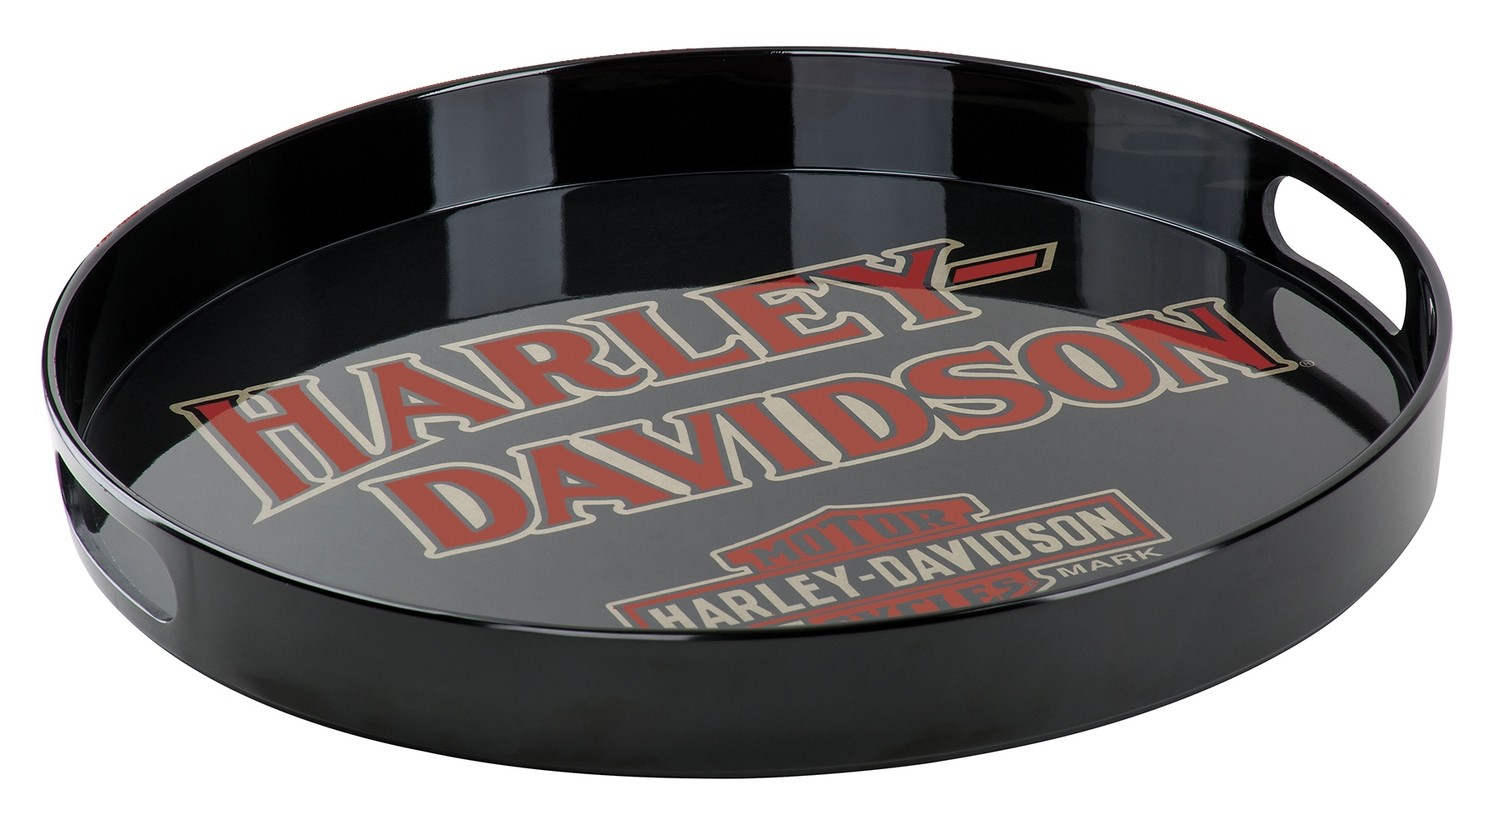 H-D Serving Tray